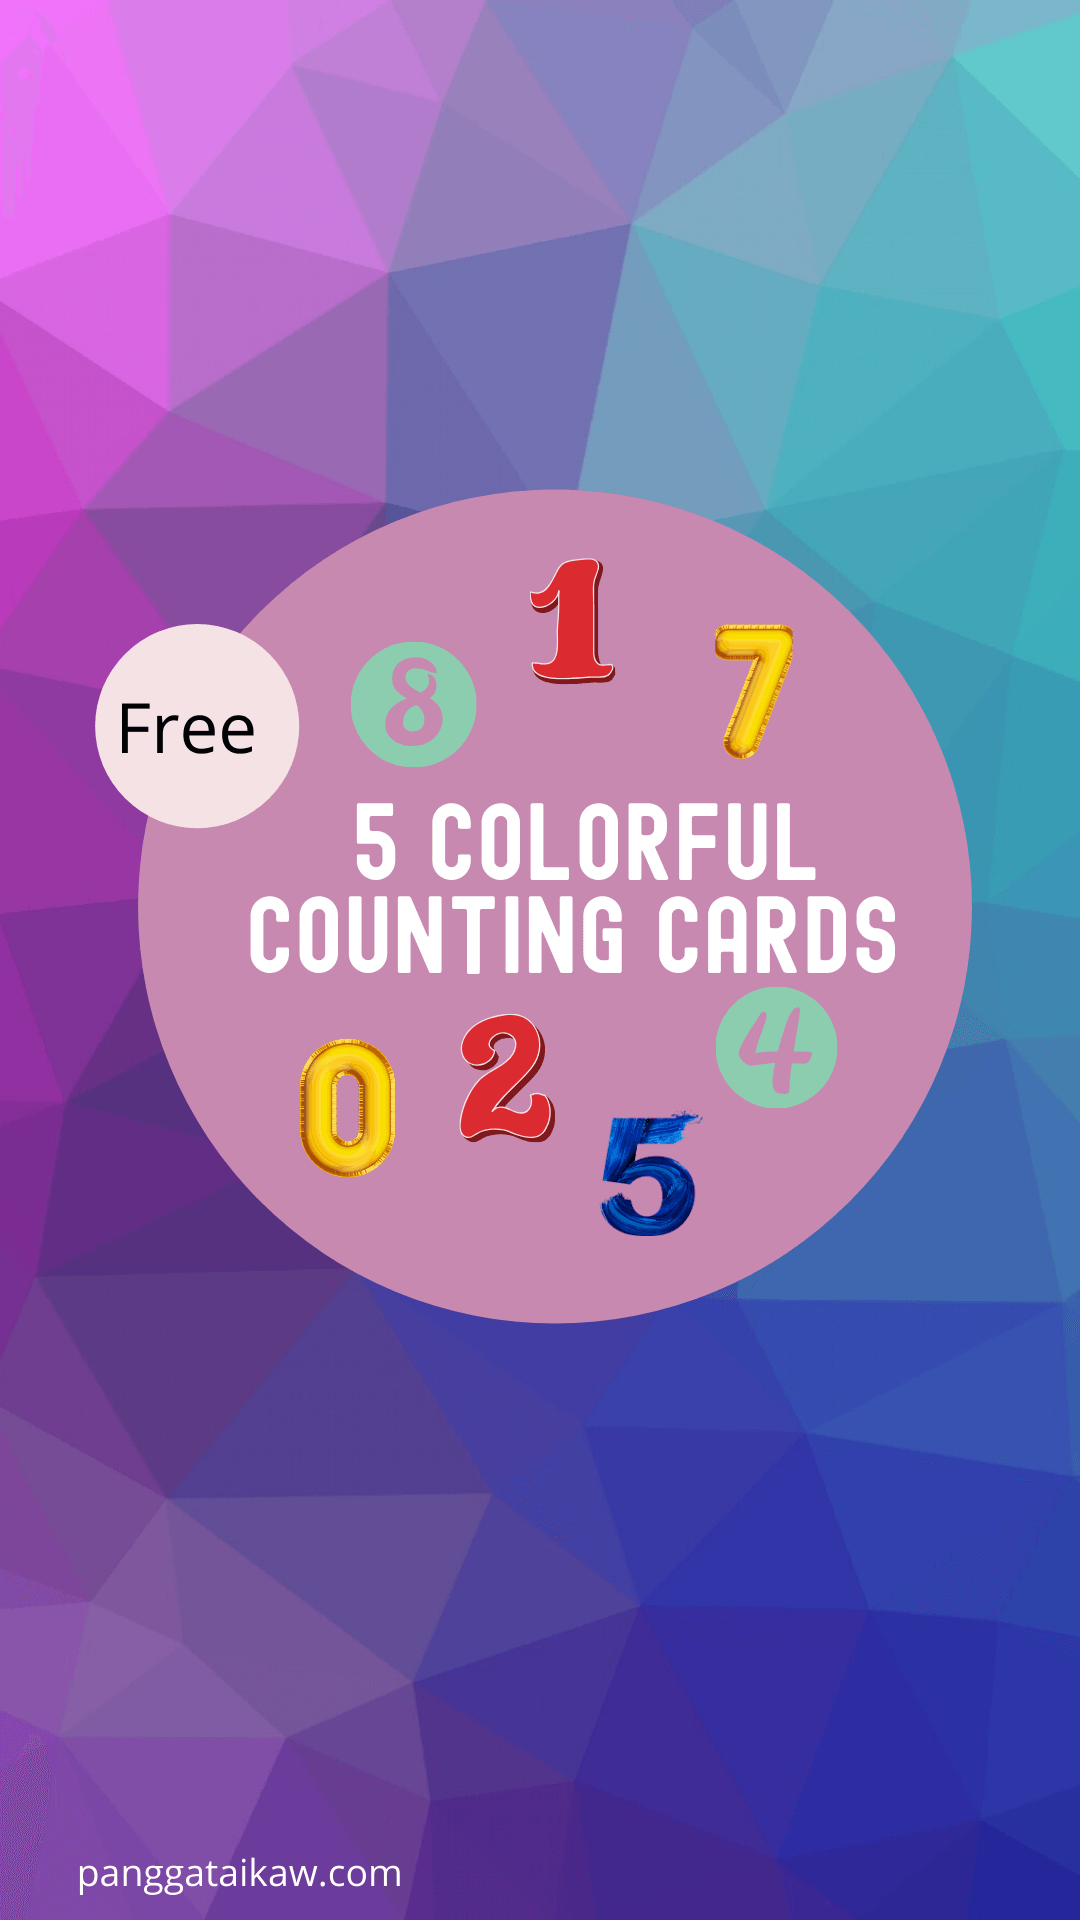 Free resources, Counting cards